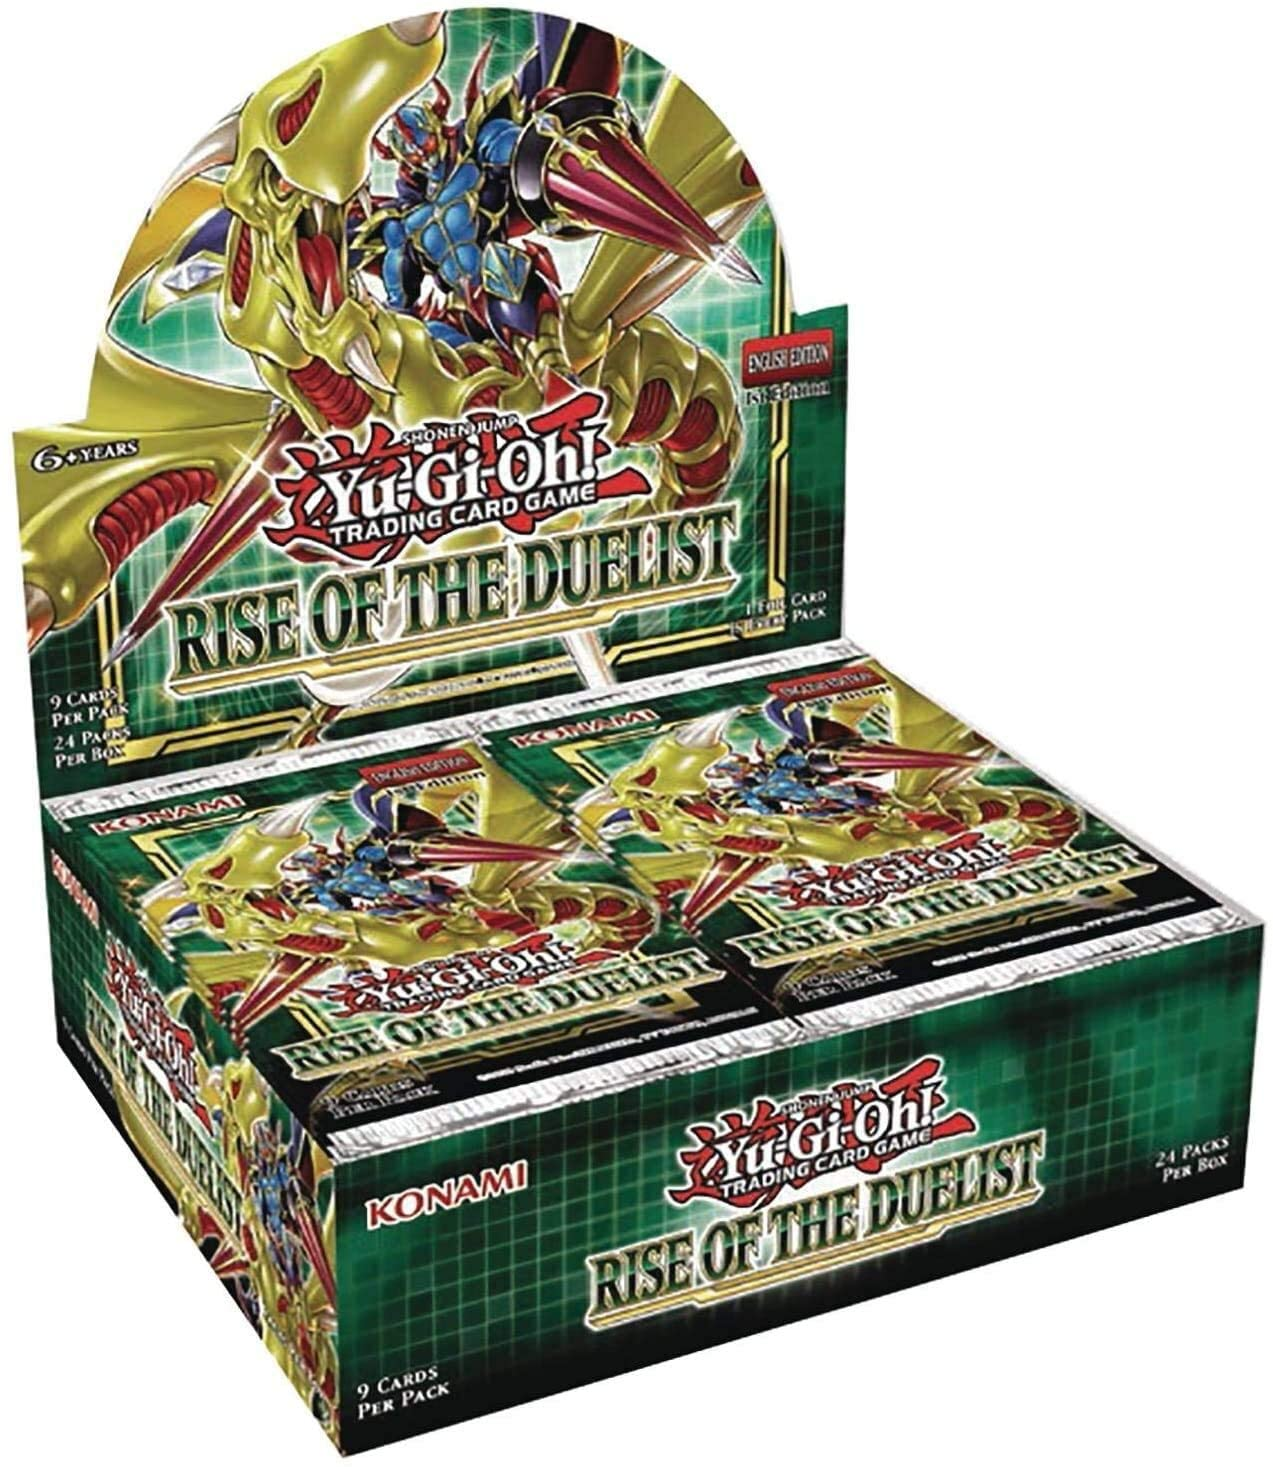 Yu Gi Oh! Rise of the Duelist Booster Box